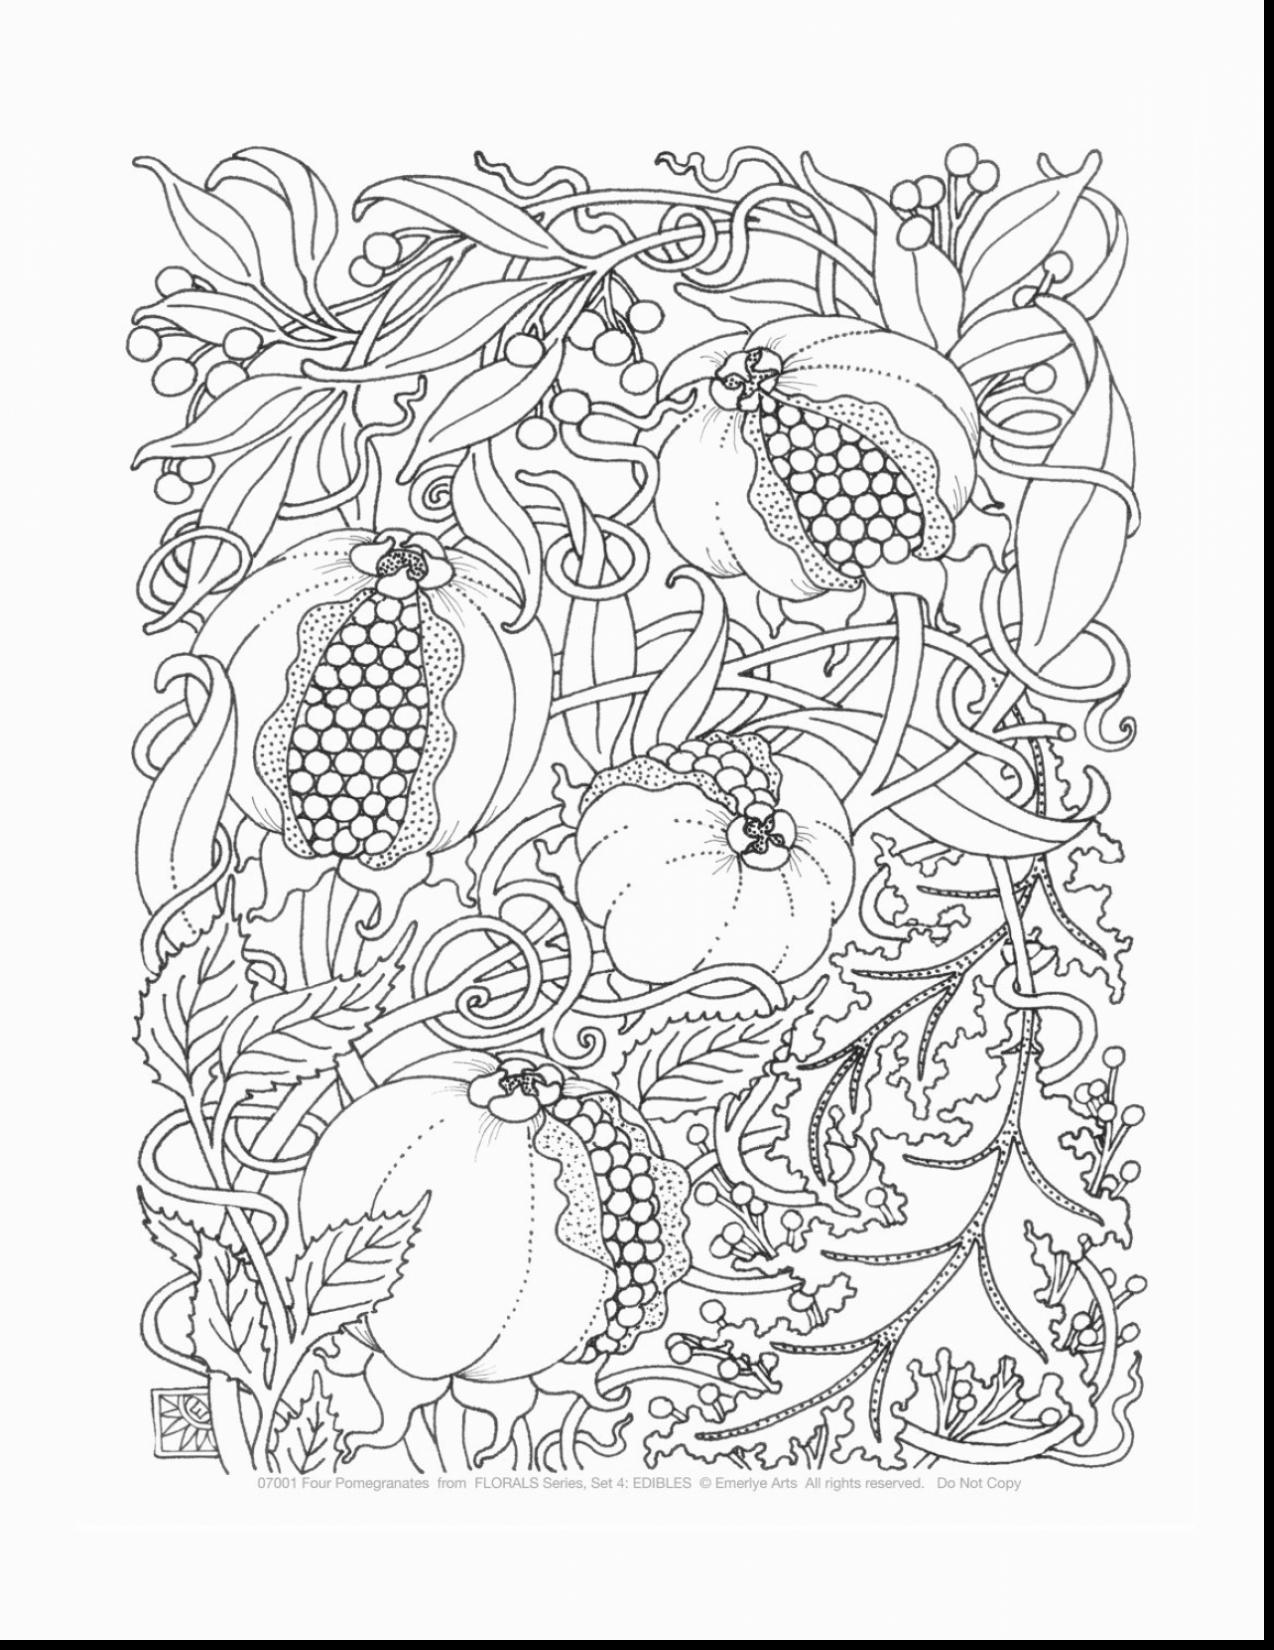 1274x1650 Coloring Page Adults Animals Panda Valentin For Complicated Animal